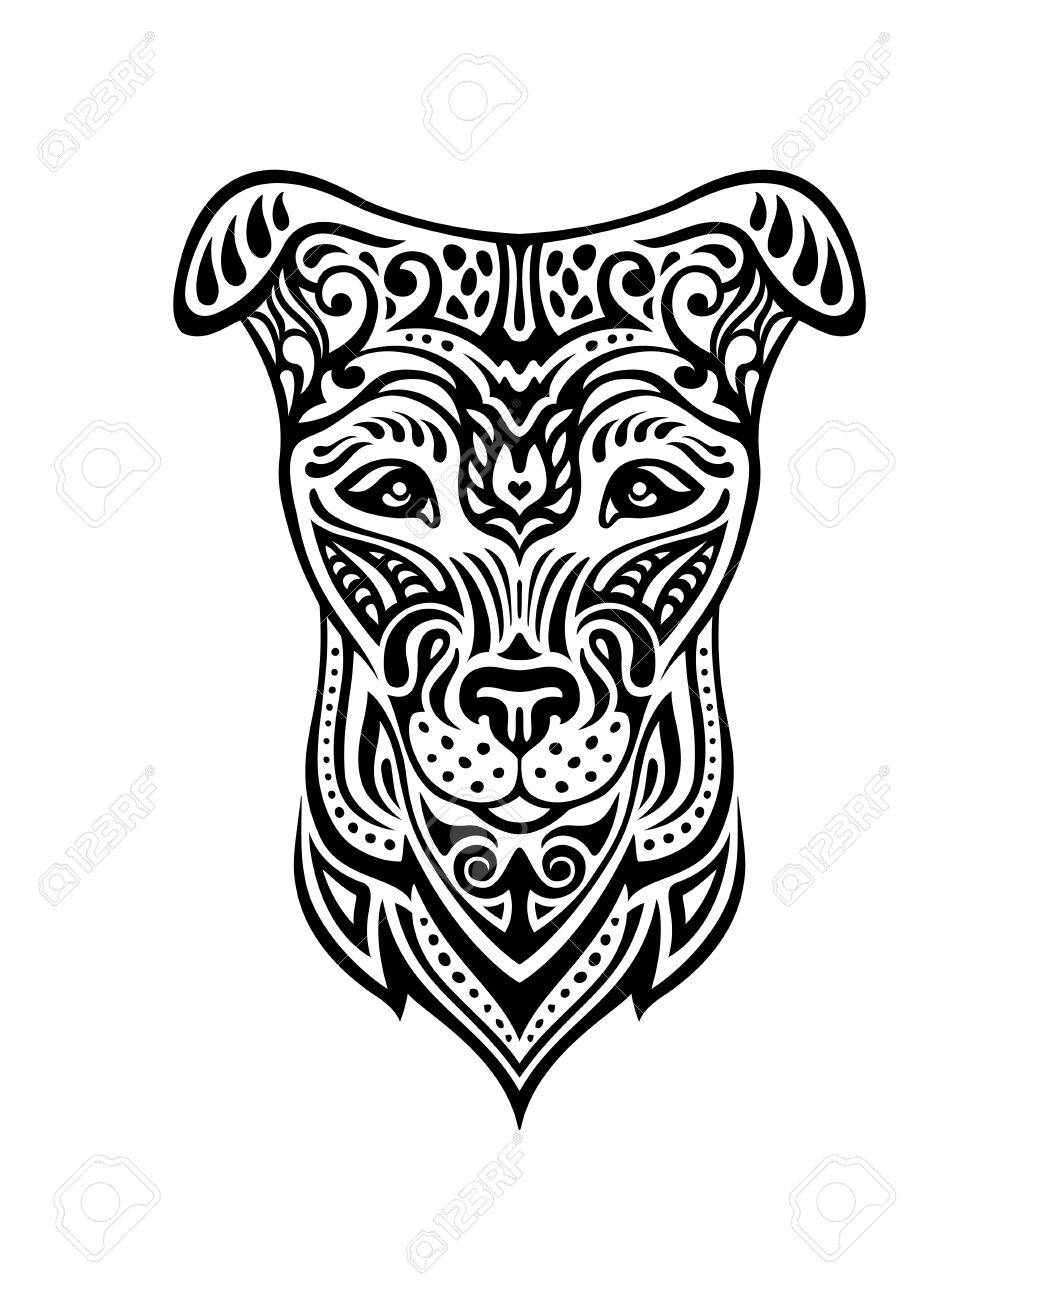 Dog Is A Symbol Of The 2018 Chinese New Year Doodle Style Design For